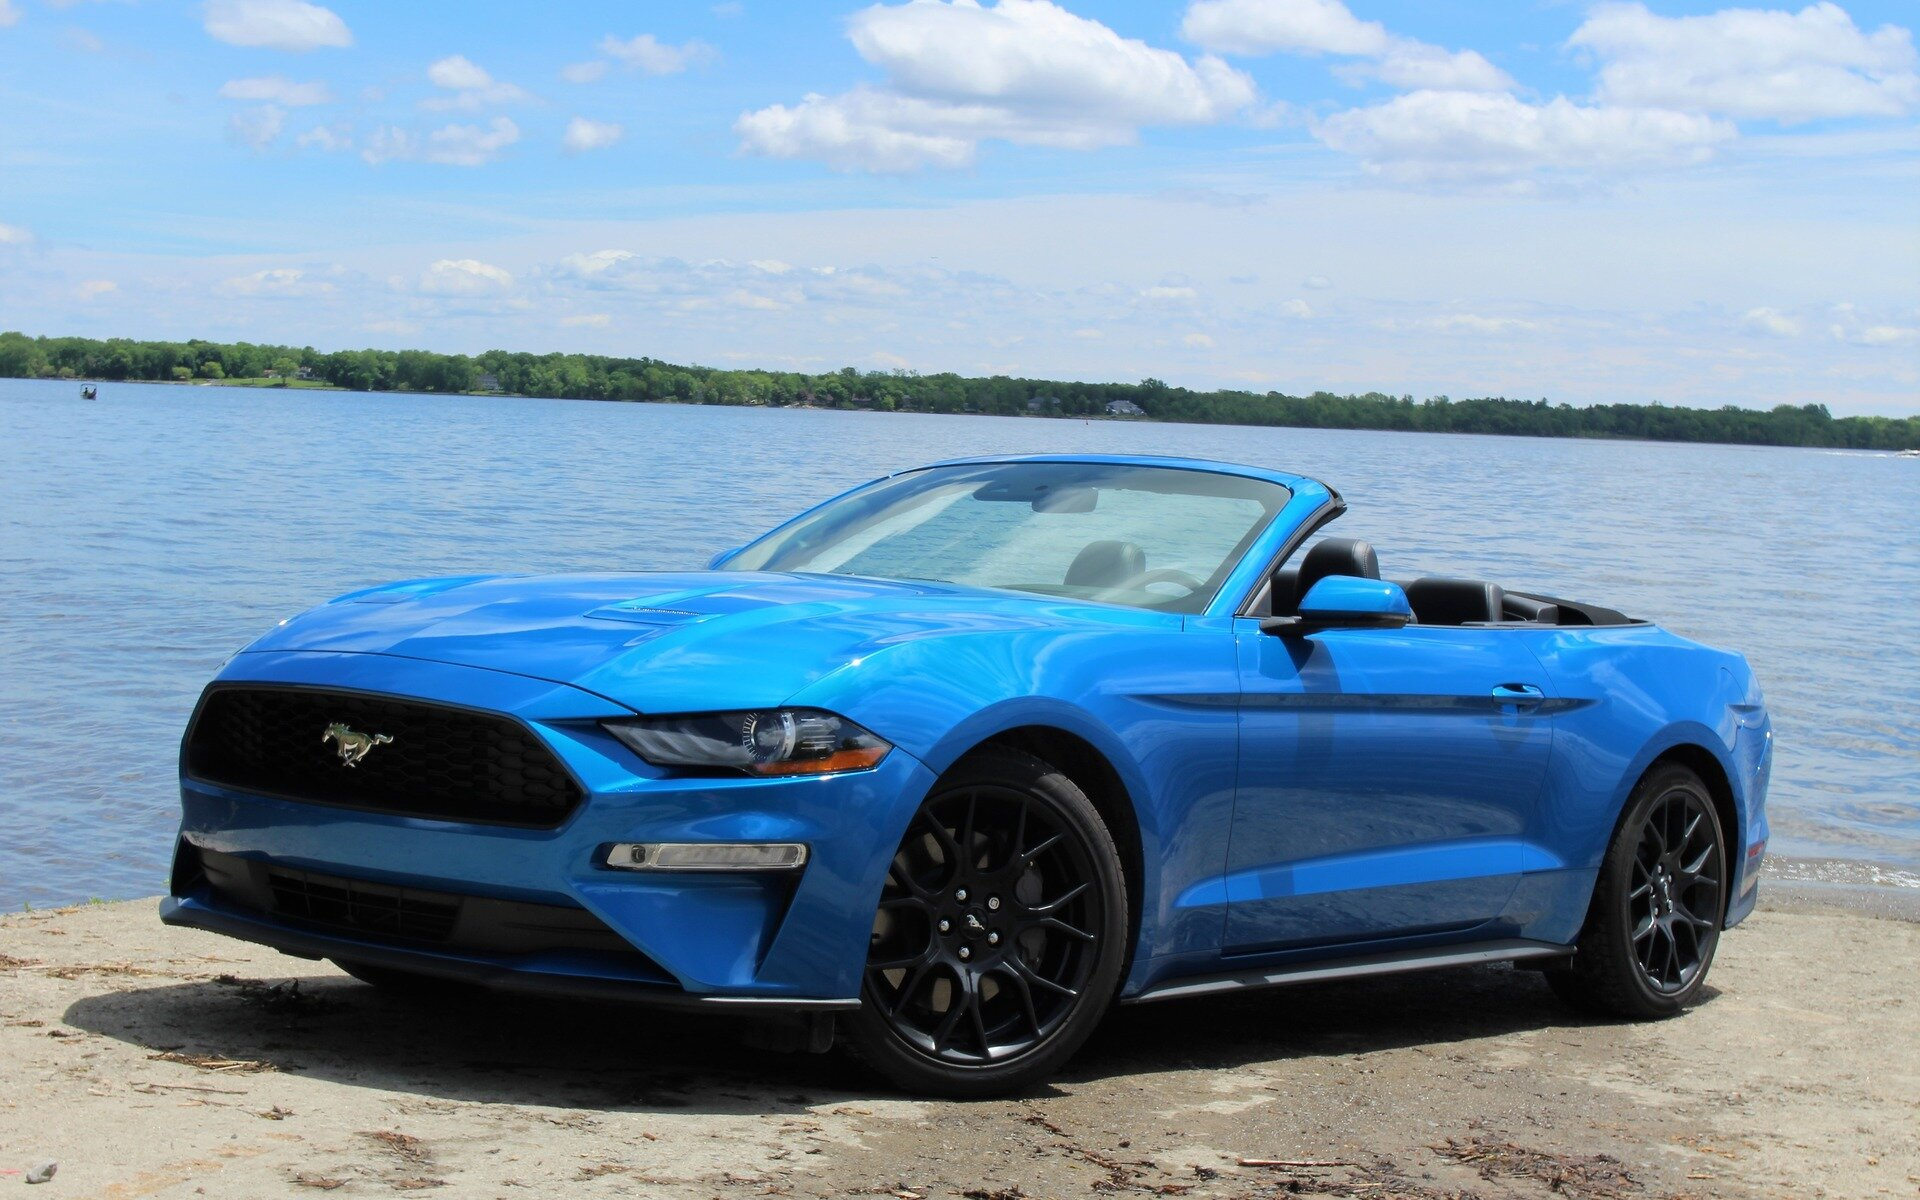 2019-ford-mustang-ecoboost-test-drive-the-car-guide.jpg